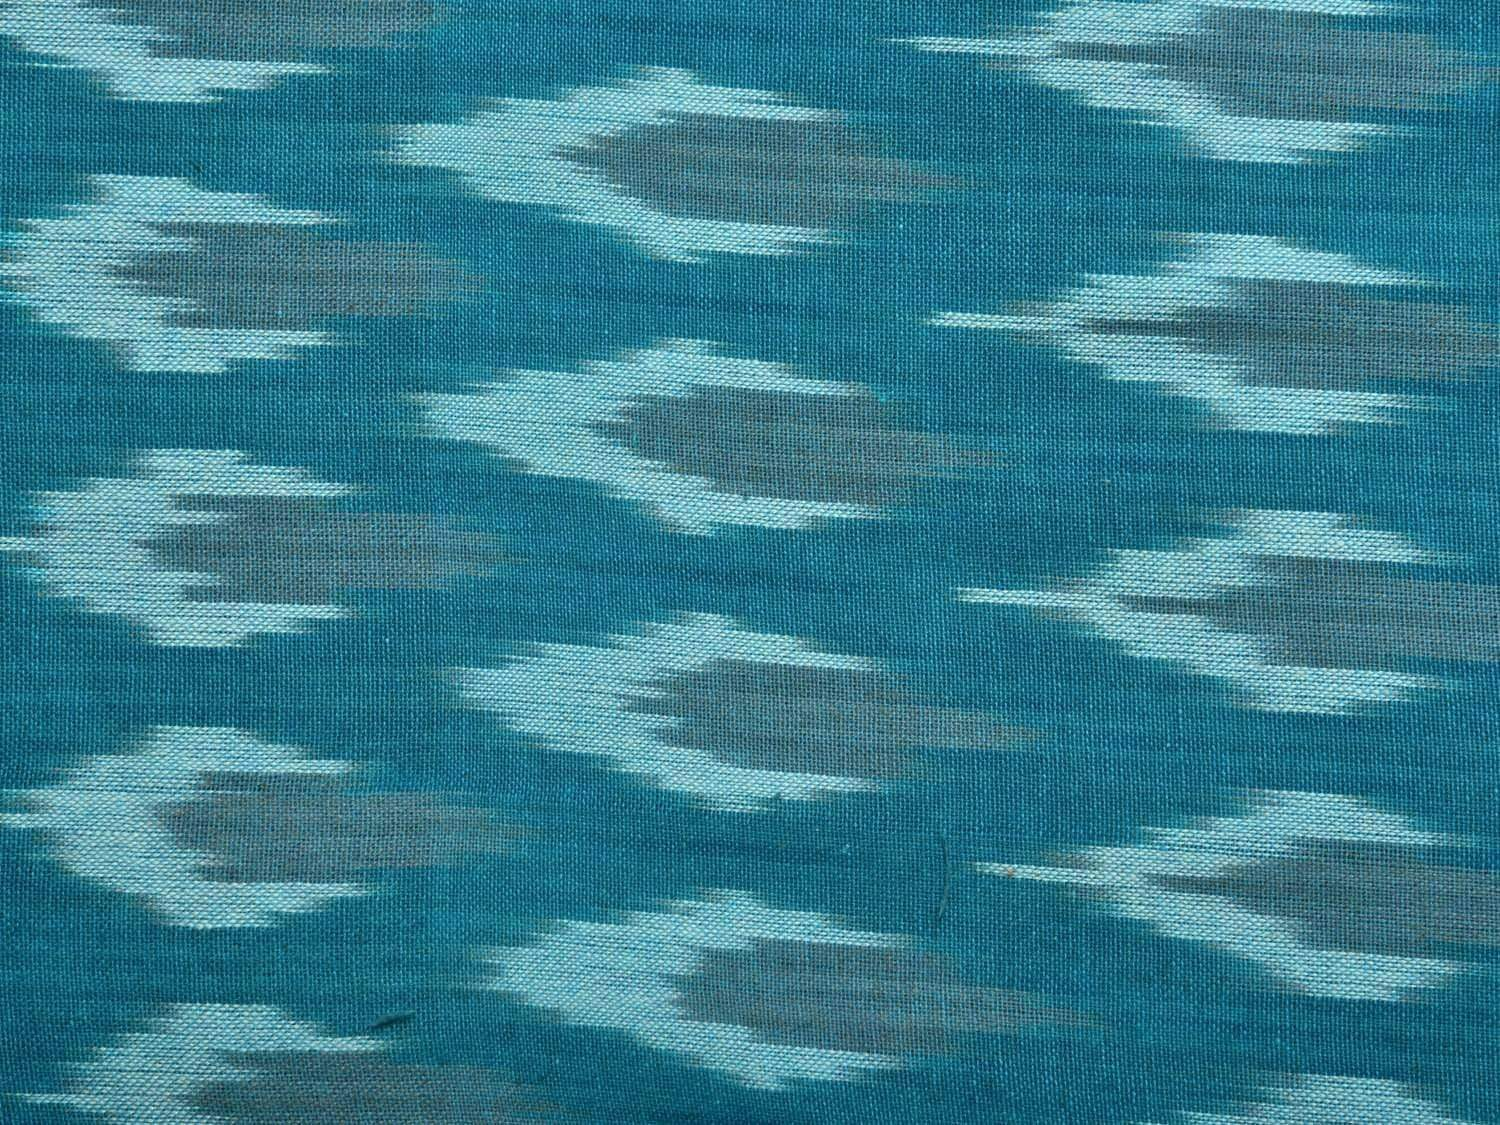 Turquoise Pochampally Ikat Cotton Handloom Fabric Material with Buta Design f0141